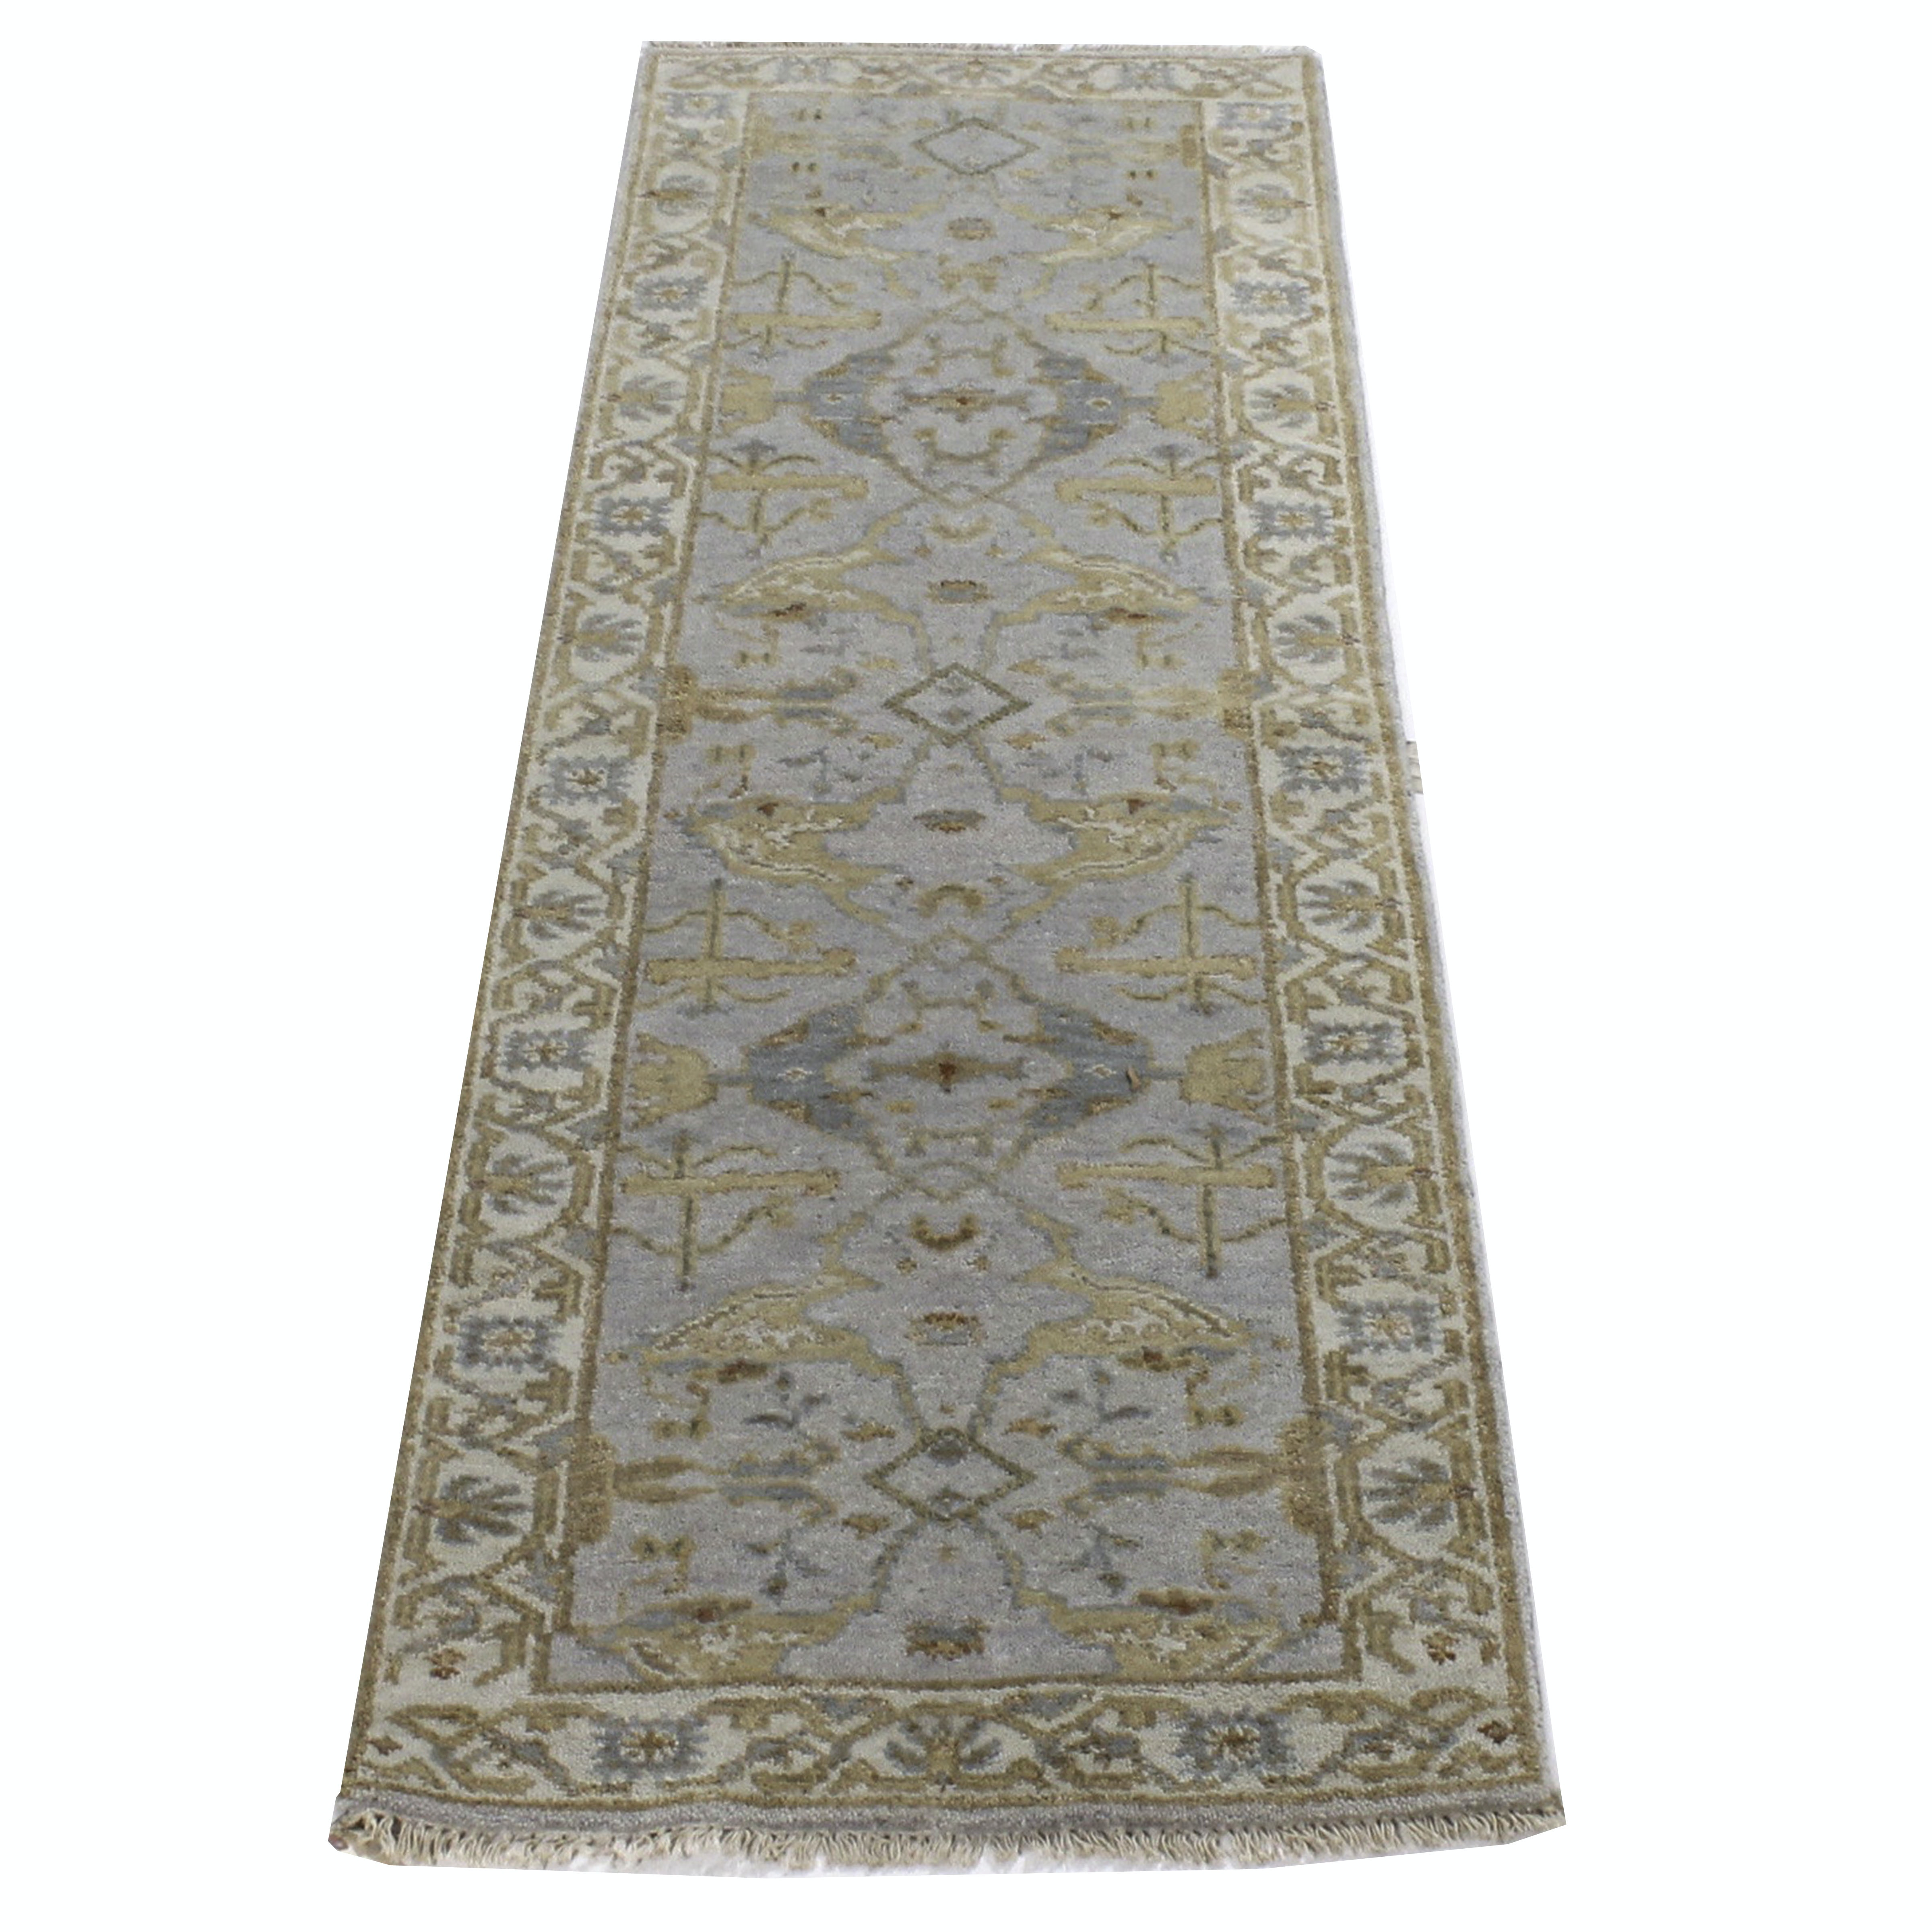 3' x 8' Hand-Knotted Indo-Turkish Oushak Chobi Runner